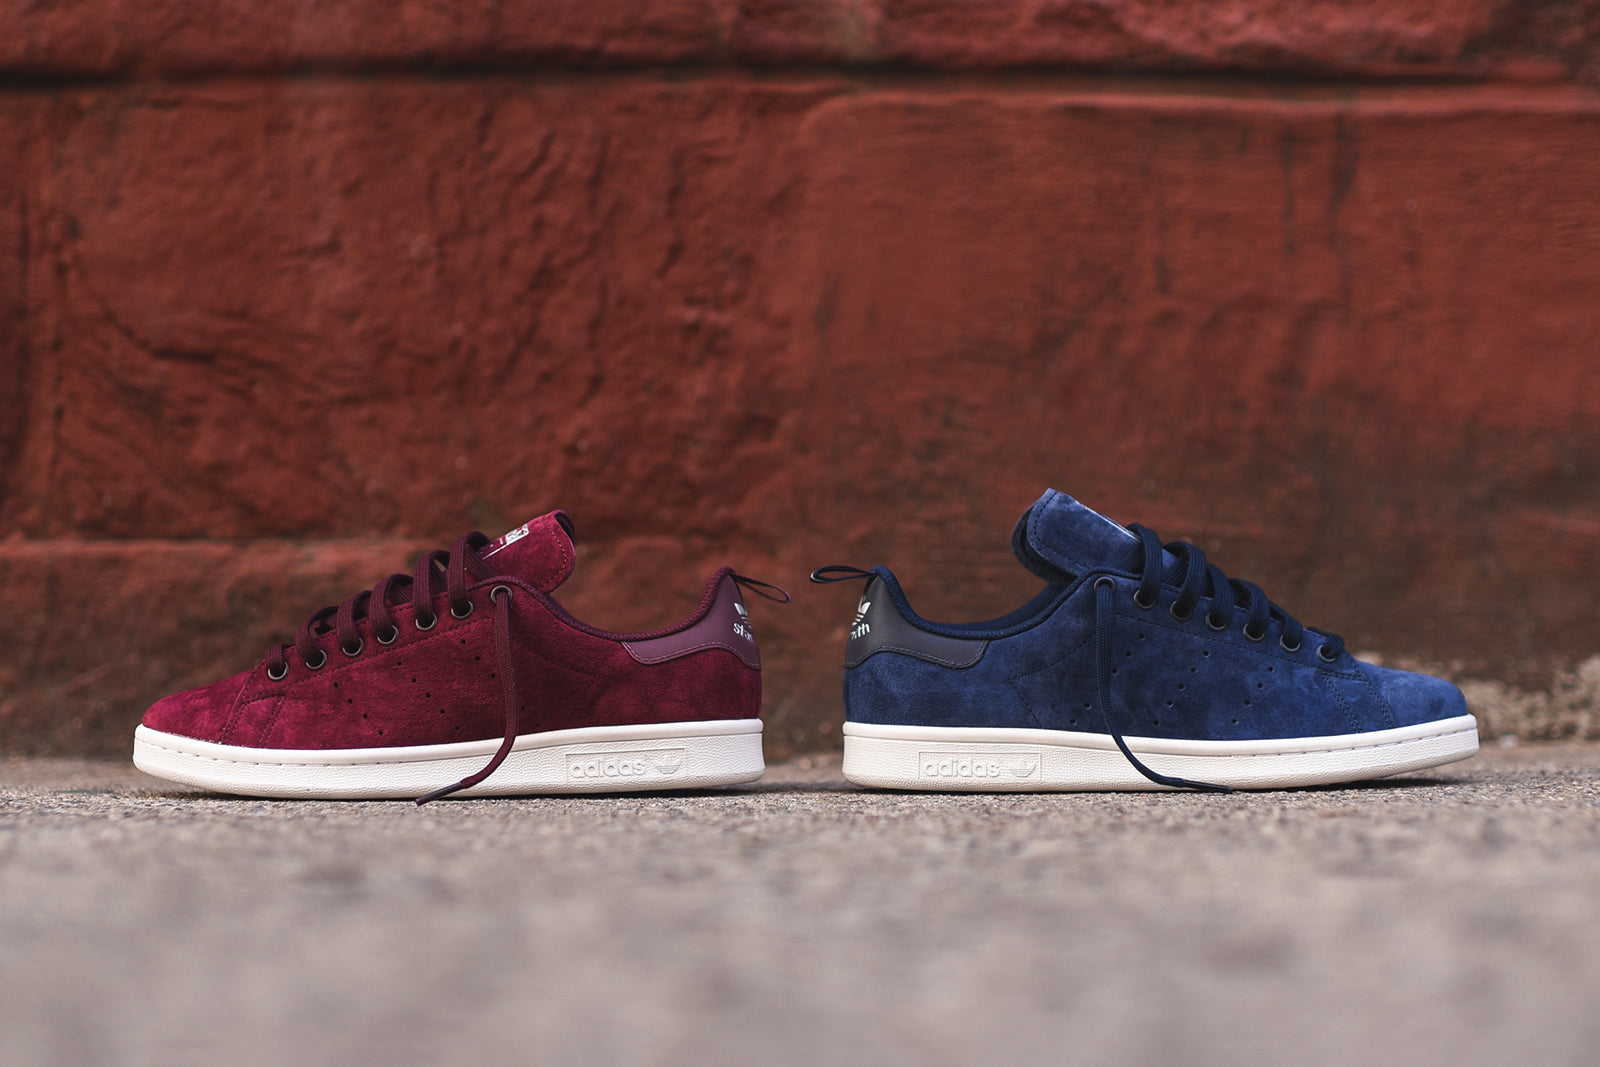 factory authentic 272c1 d5af5 adidas Originals Stan Smith Suede Pack – Kith